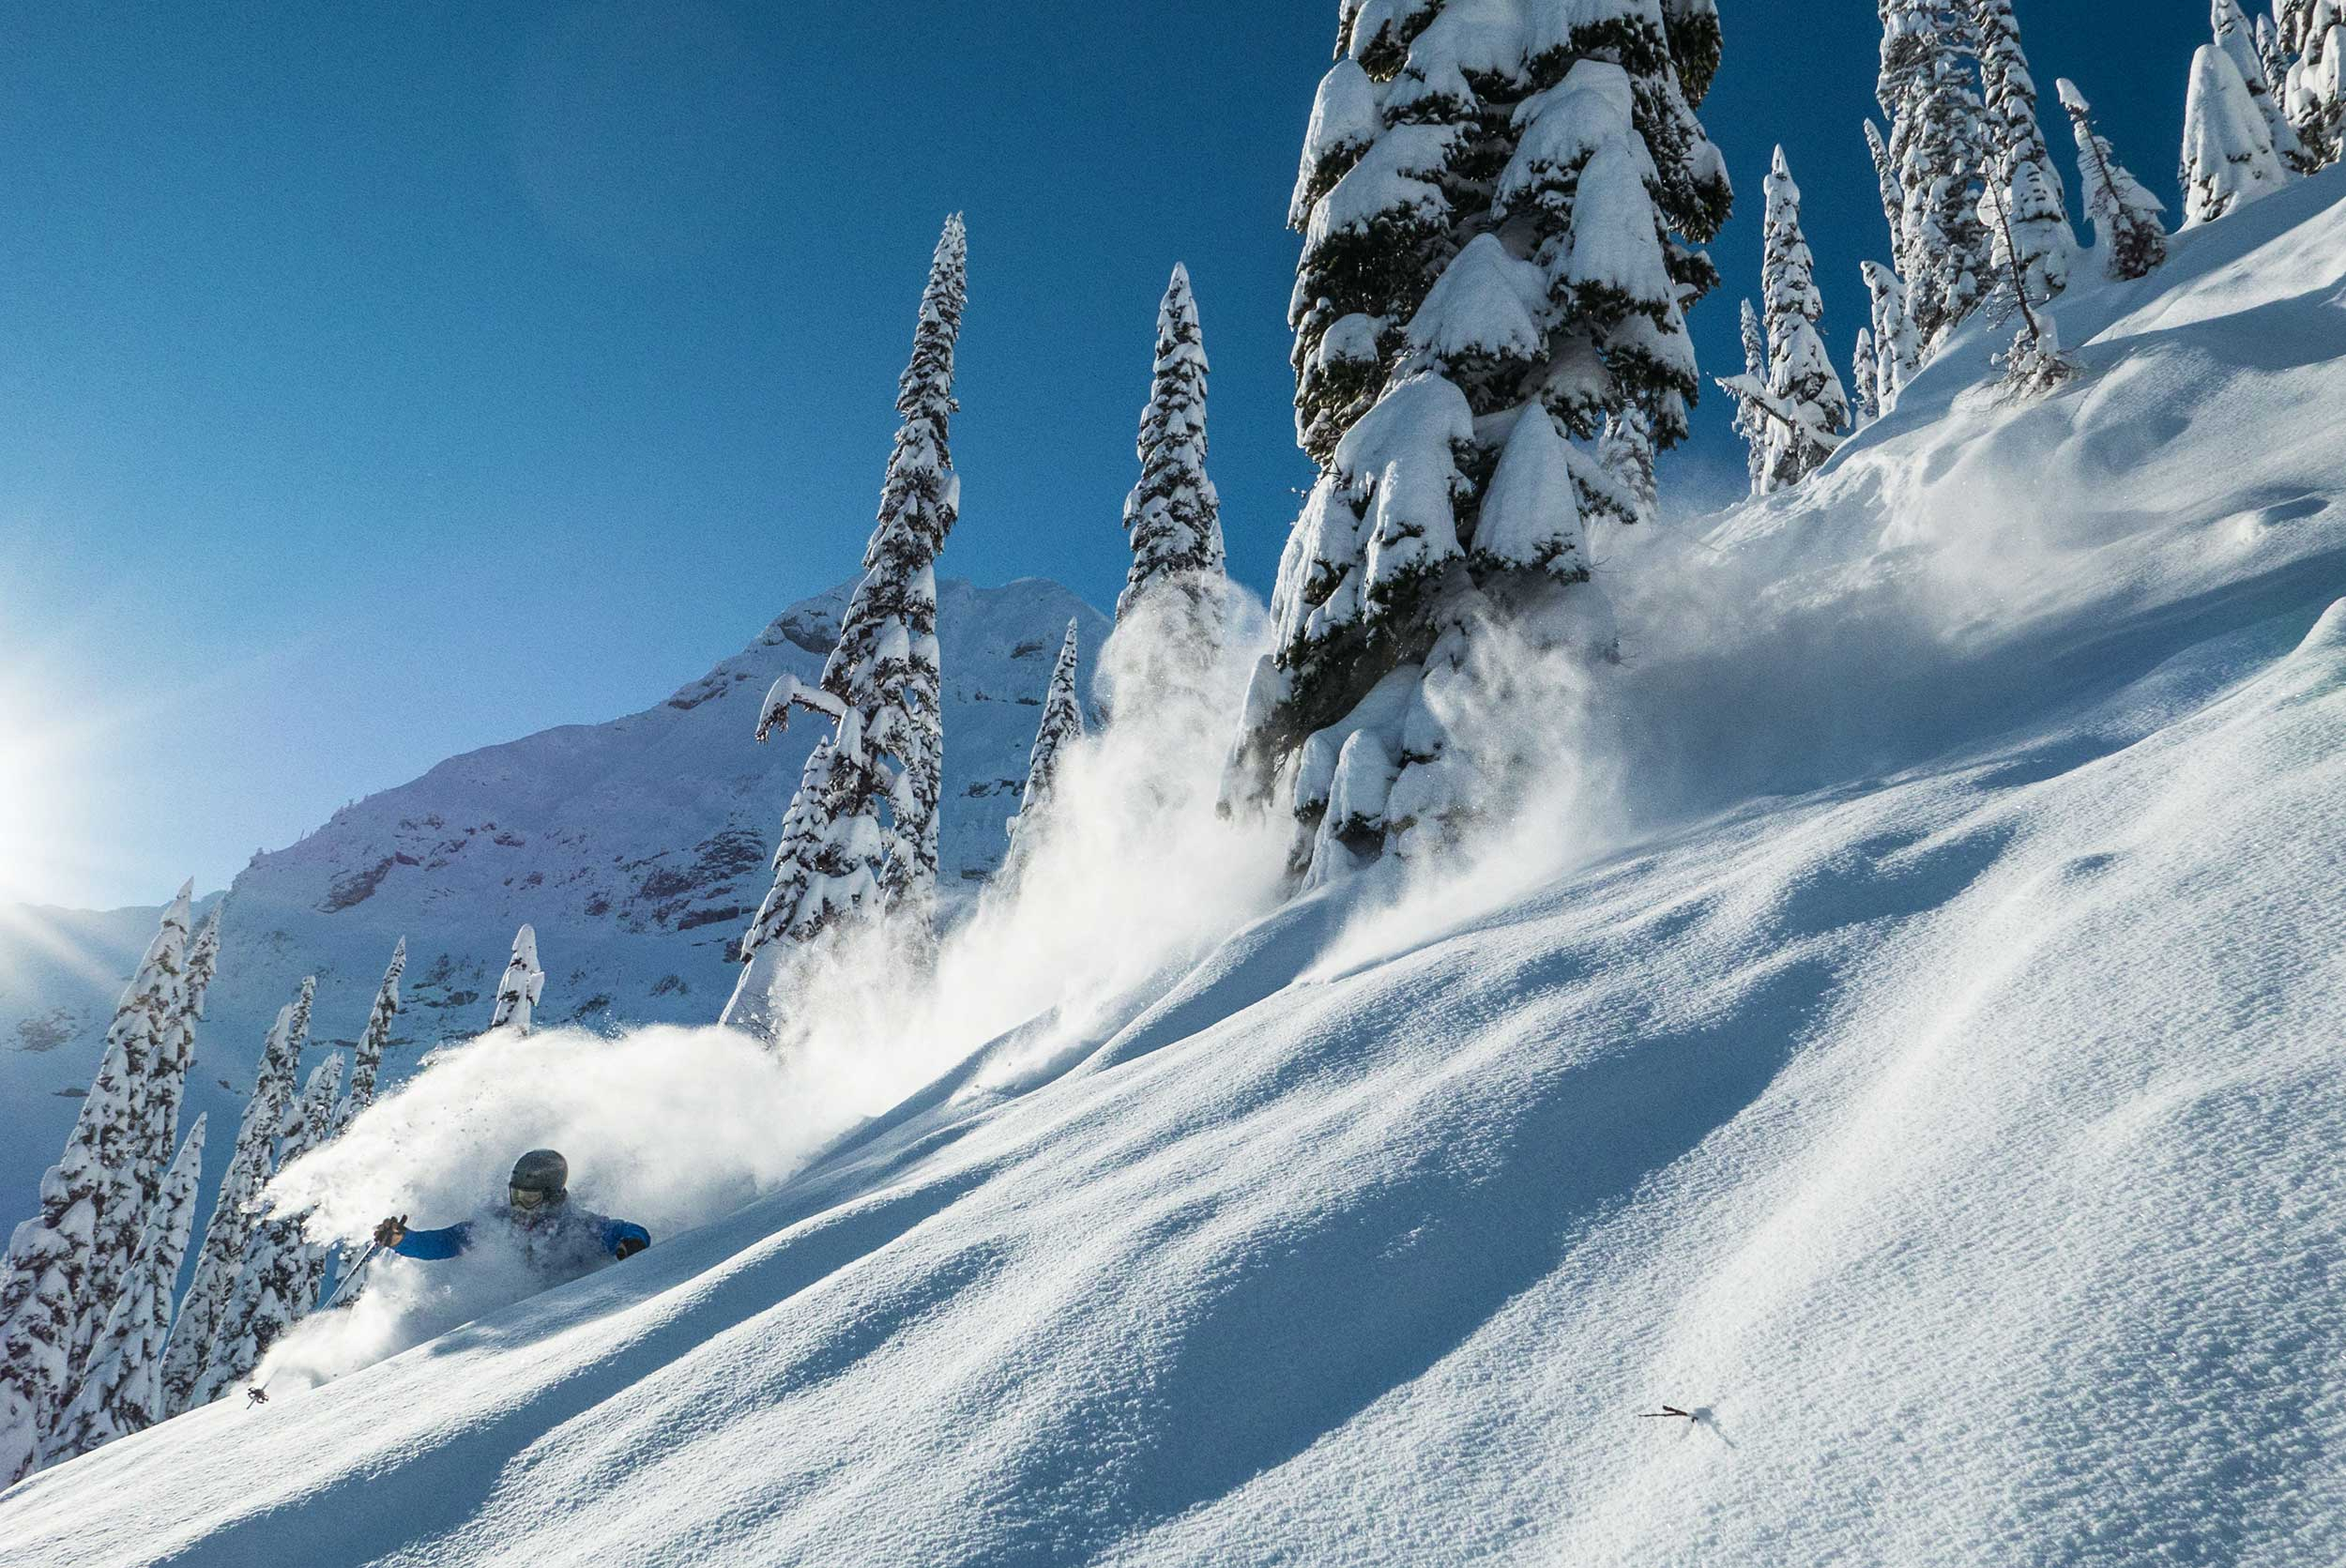 Rob Heule has road tripped all over Canada. But home is the steep, deep trees of British Columbia at Fernie. PHOTO: Jay Heule